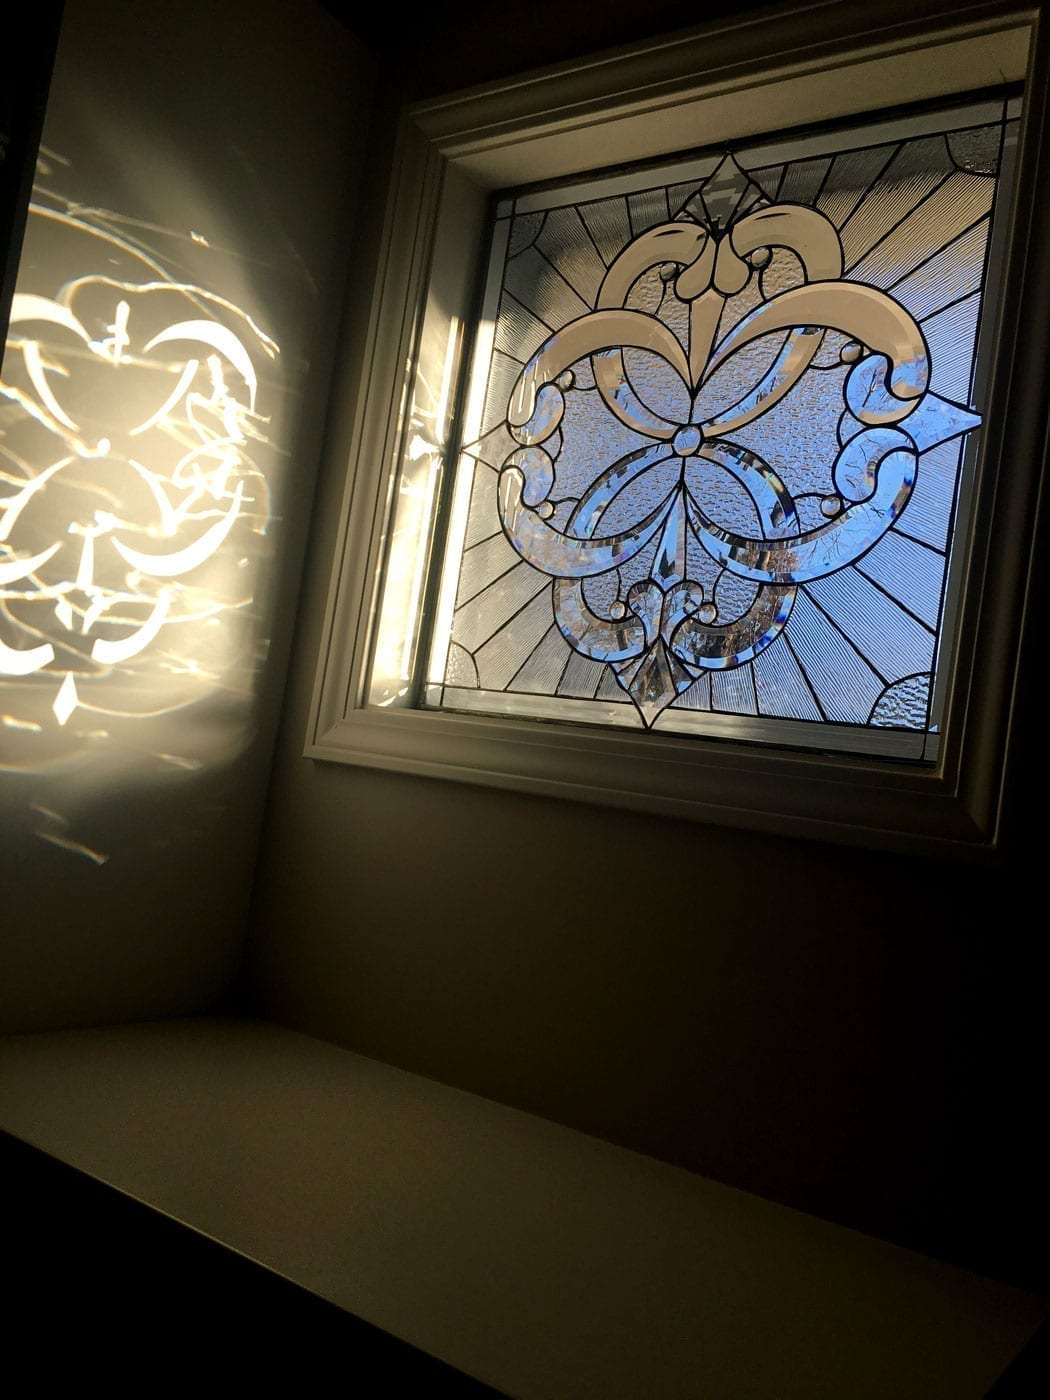 Pacifica Style Stained Glass Window Installed, minimal installation